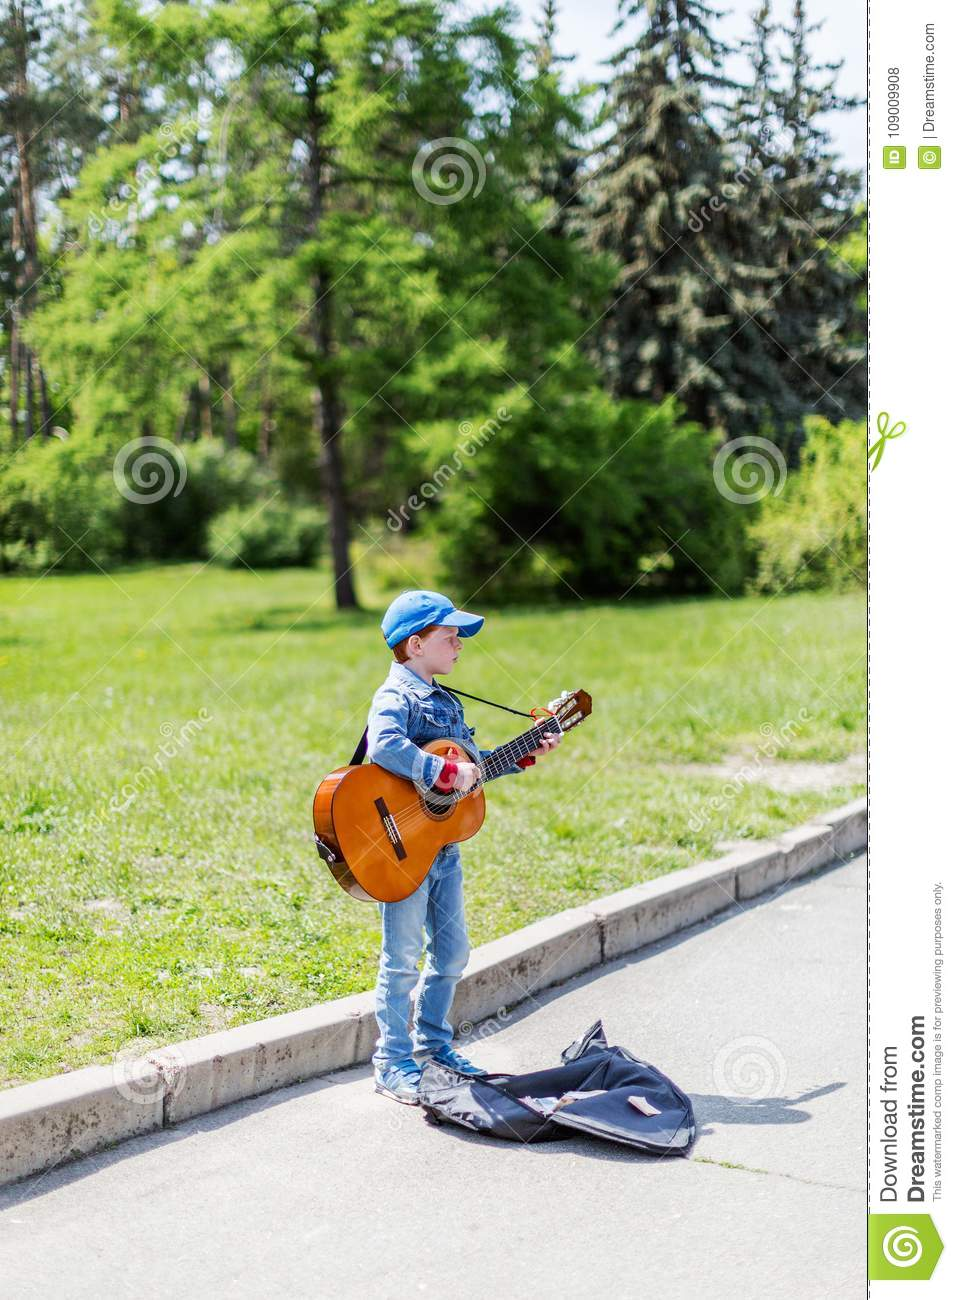 Boy playing on acoustic guitar outdoors. Little street musician. KYIV UKRAINE May 01, 2016